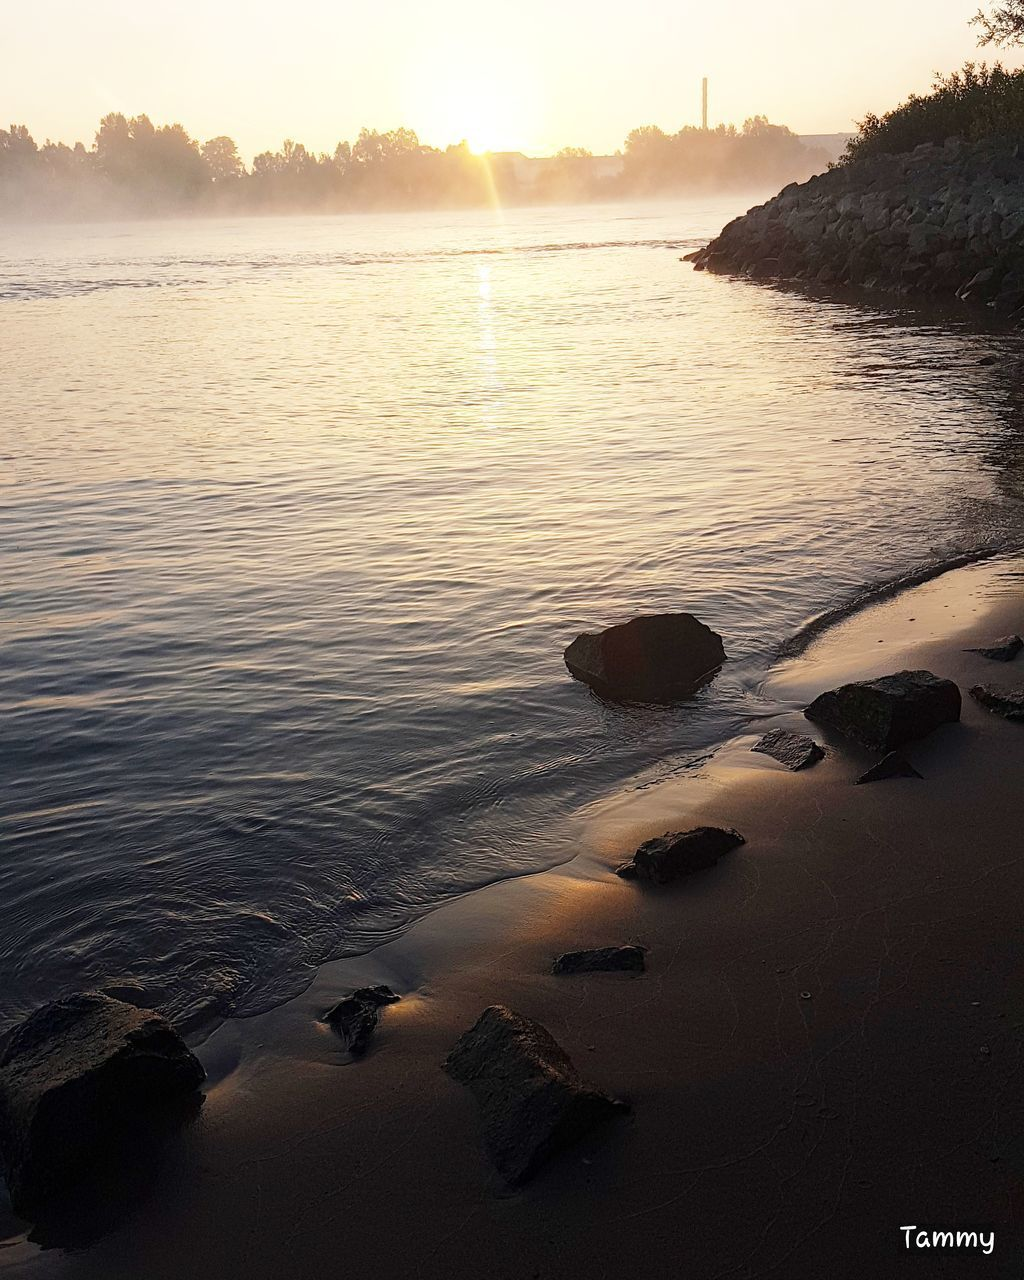 sunset, water, nature, beauty in nature, tranquility, scenics, sun, tranquil scene, outdoors, rock - object, sky, no people, sunlight, sea, beach, tree, day